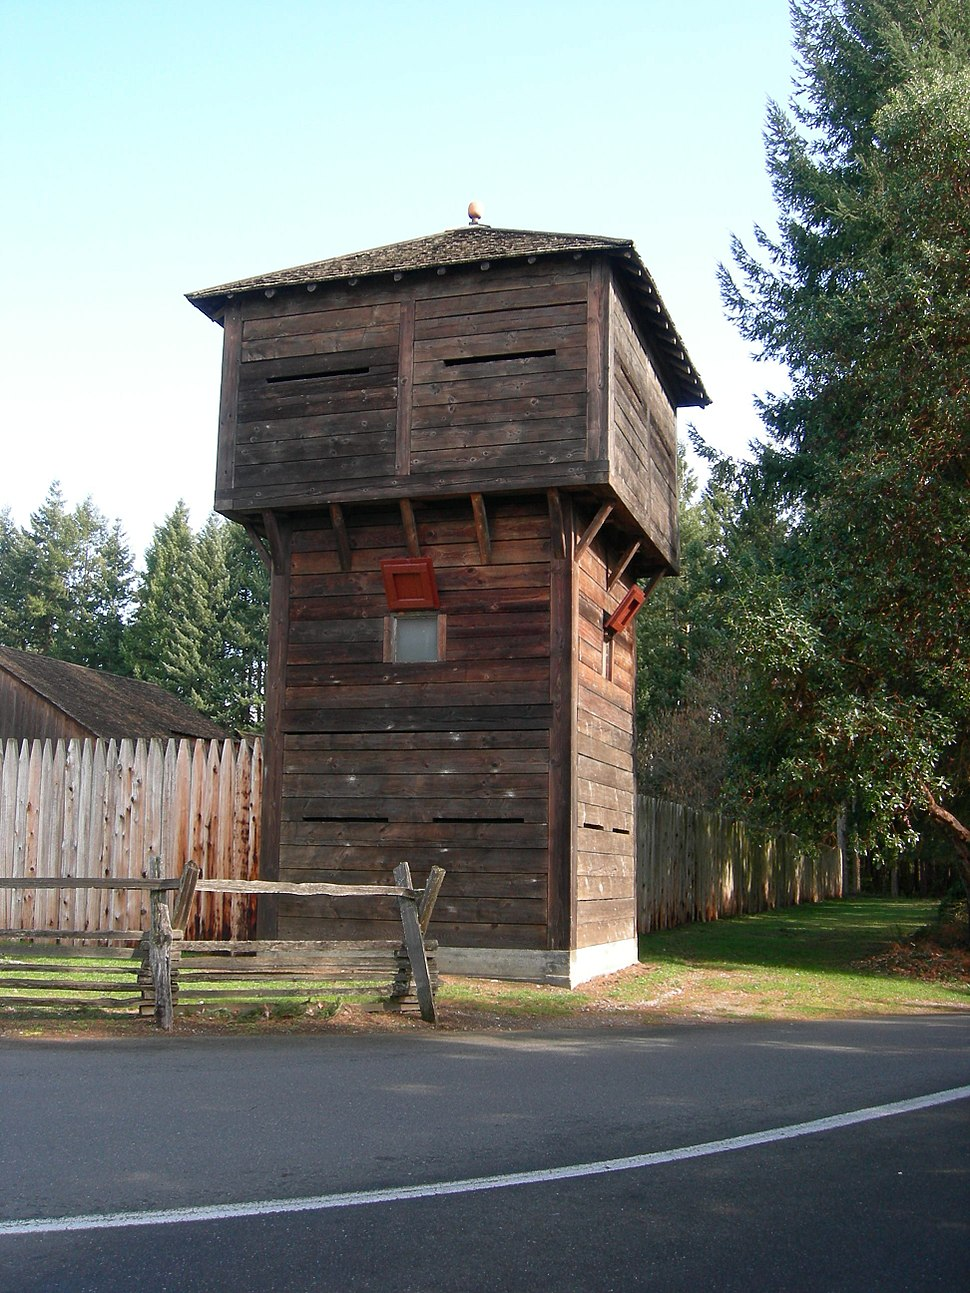 Ft Nisqually blockhouse